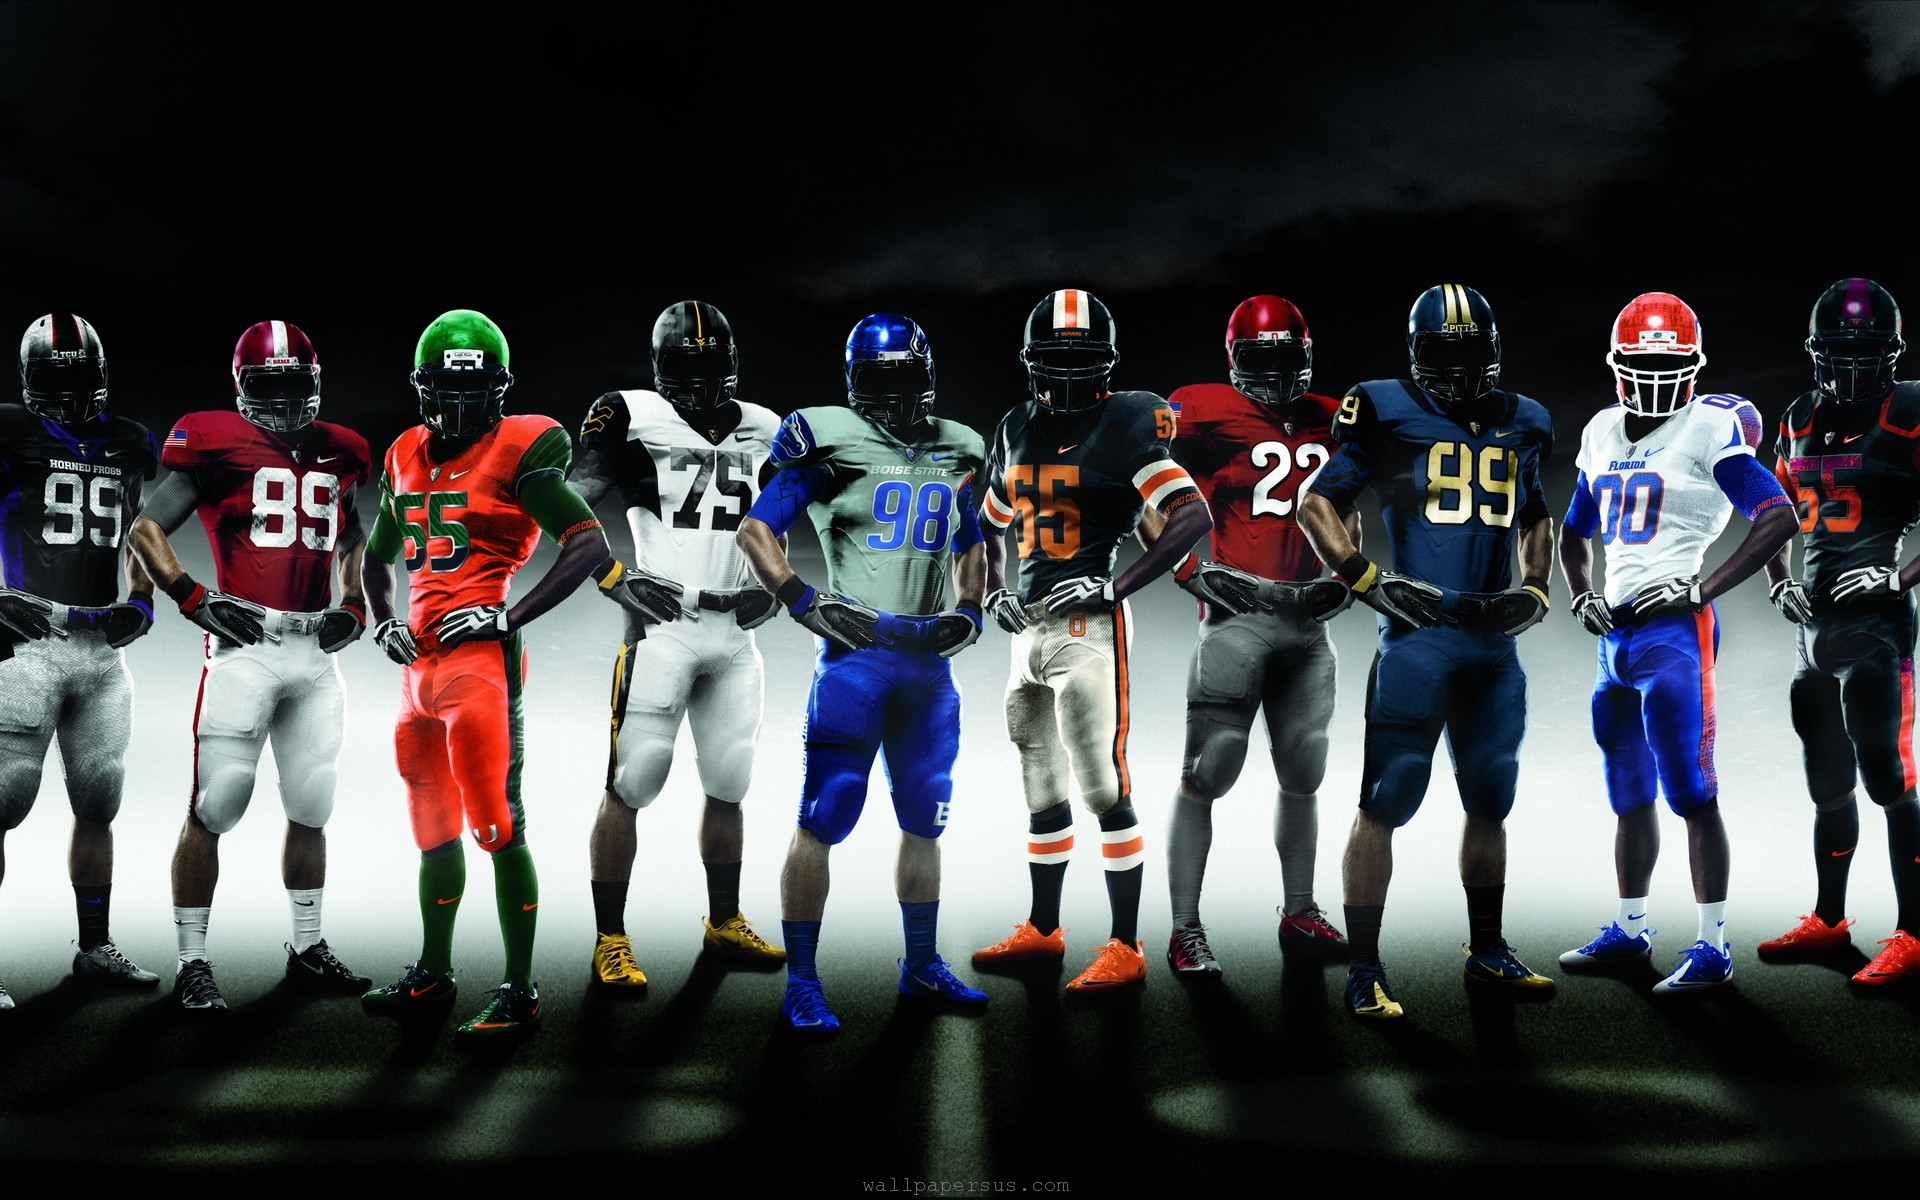 College Football Teams Nike Pro Combat 1920x1200 WIDE College Football 1920x1200